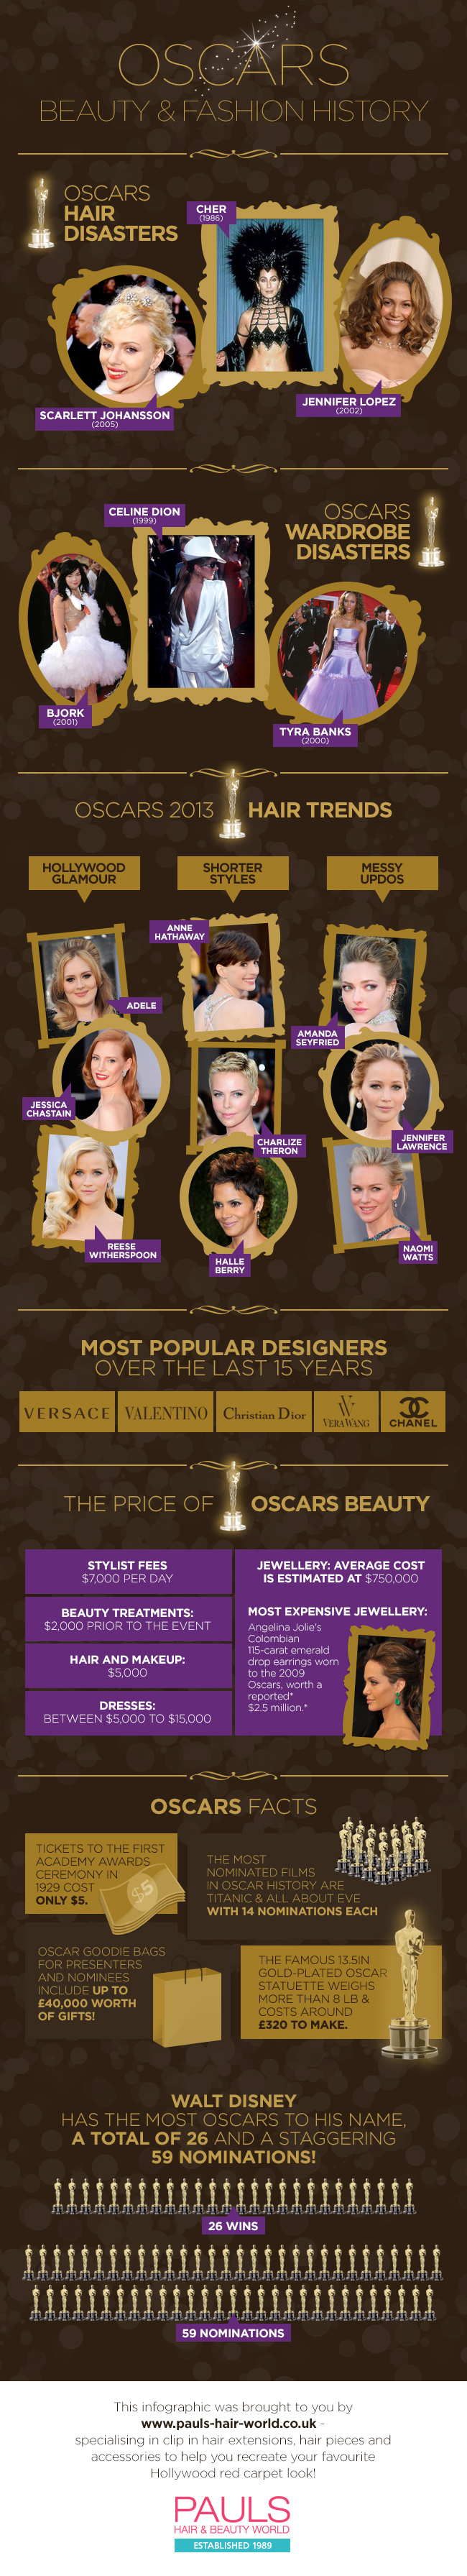 Oscars Beauty & Fashion History